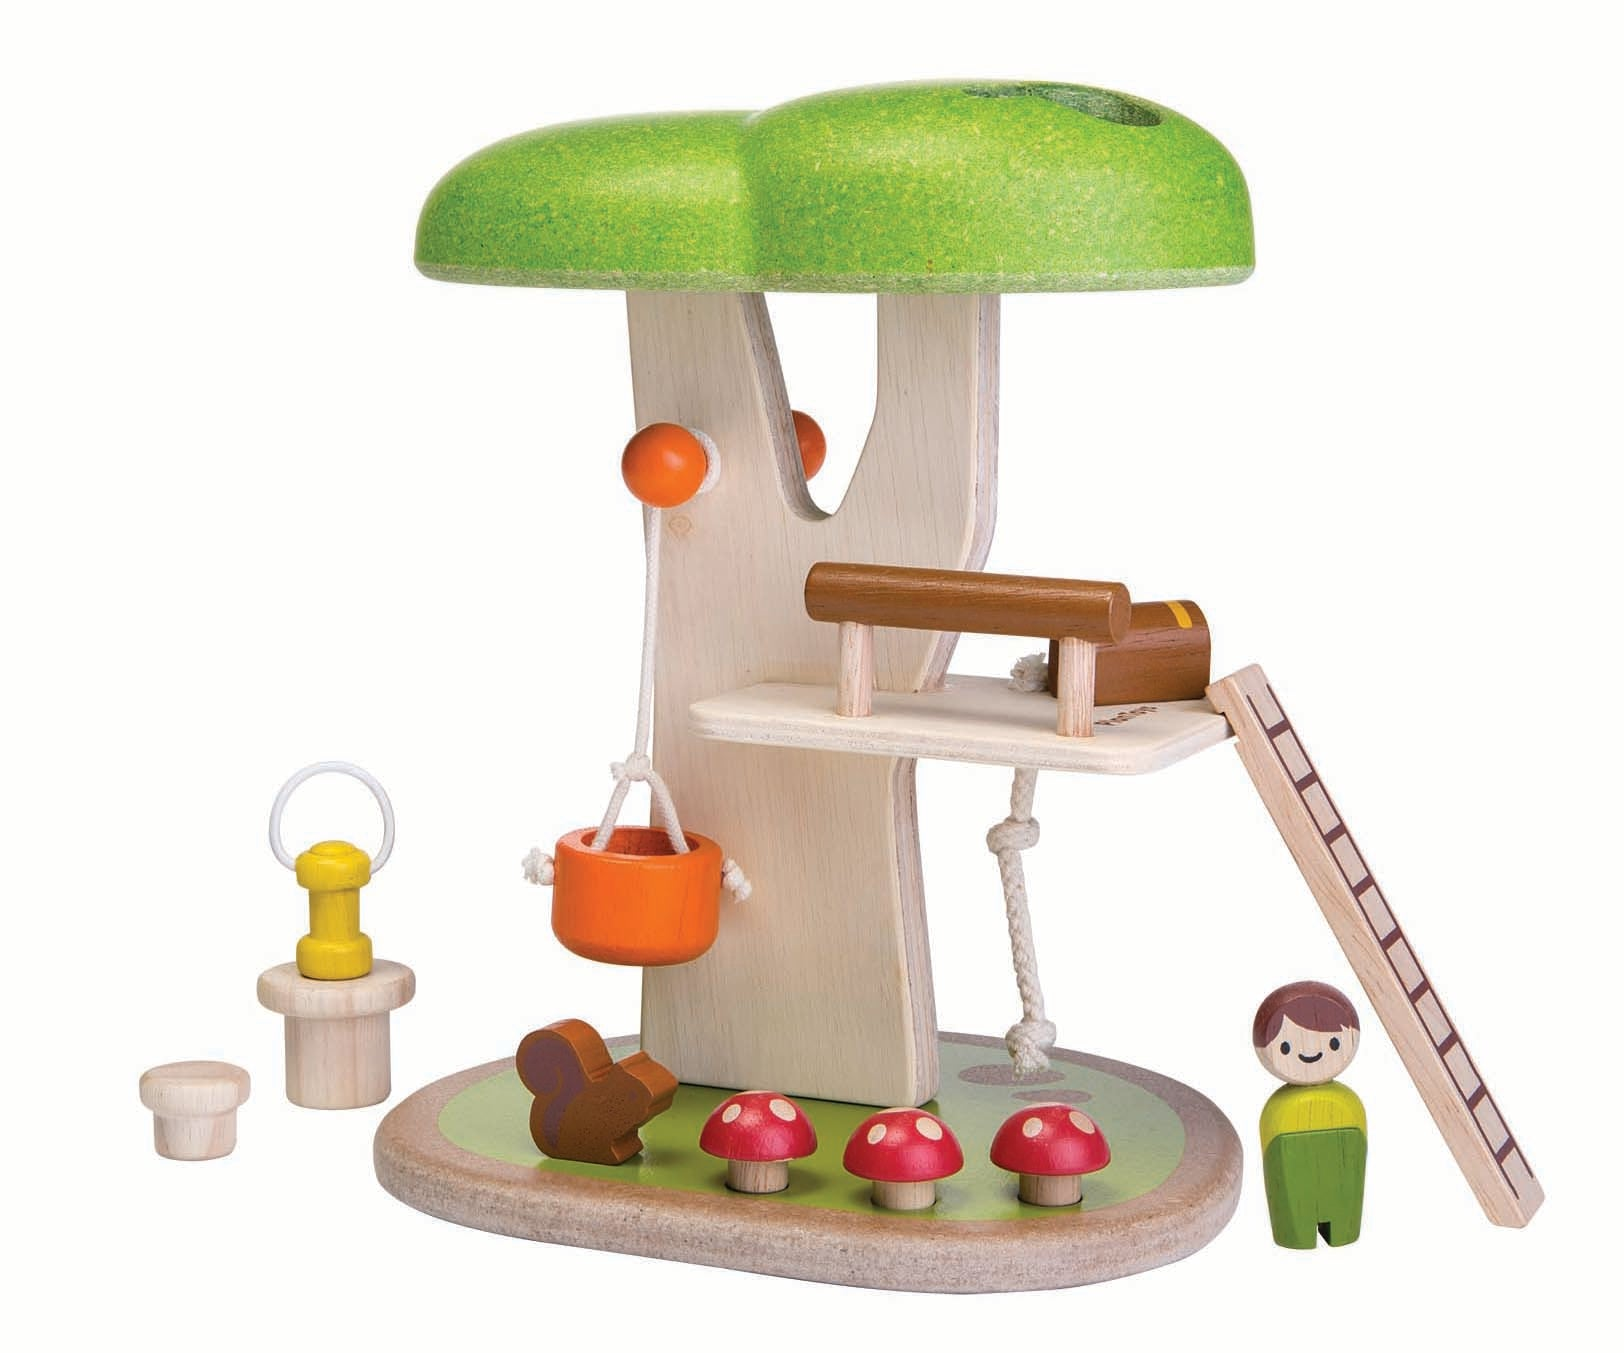 Plantoys - Treehouse - Playset - How I Wonder